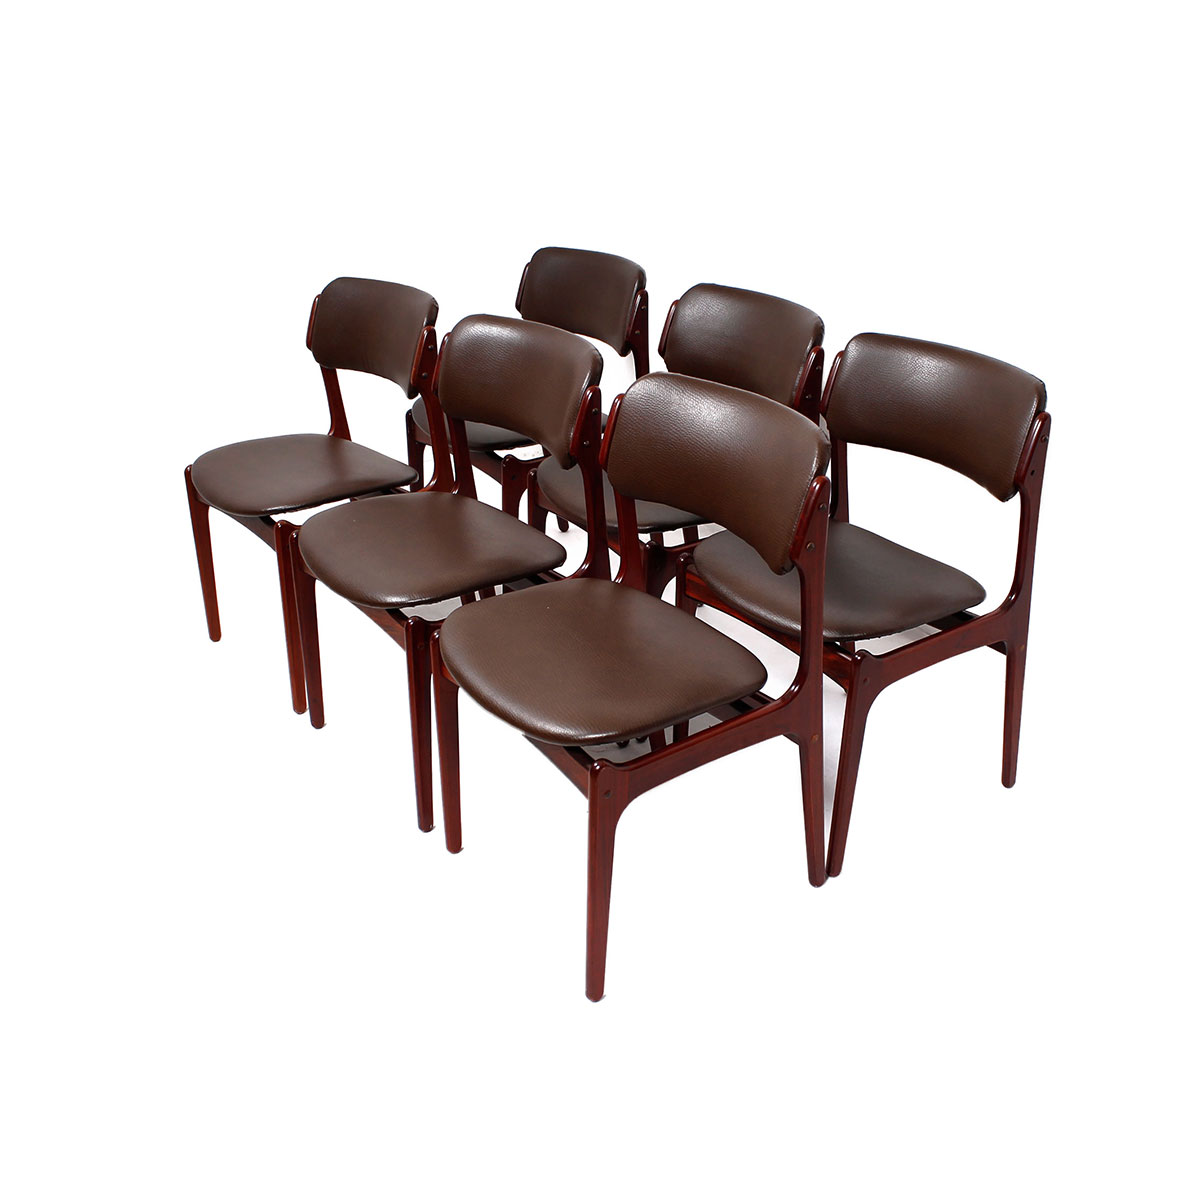 Rosewood Set of 6 Re-upholstered Dining Chairs by Erik Buch